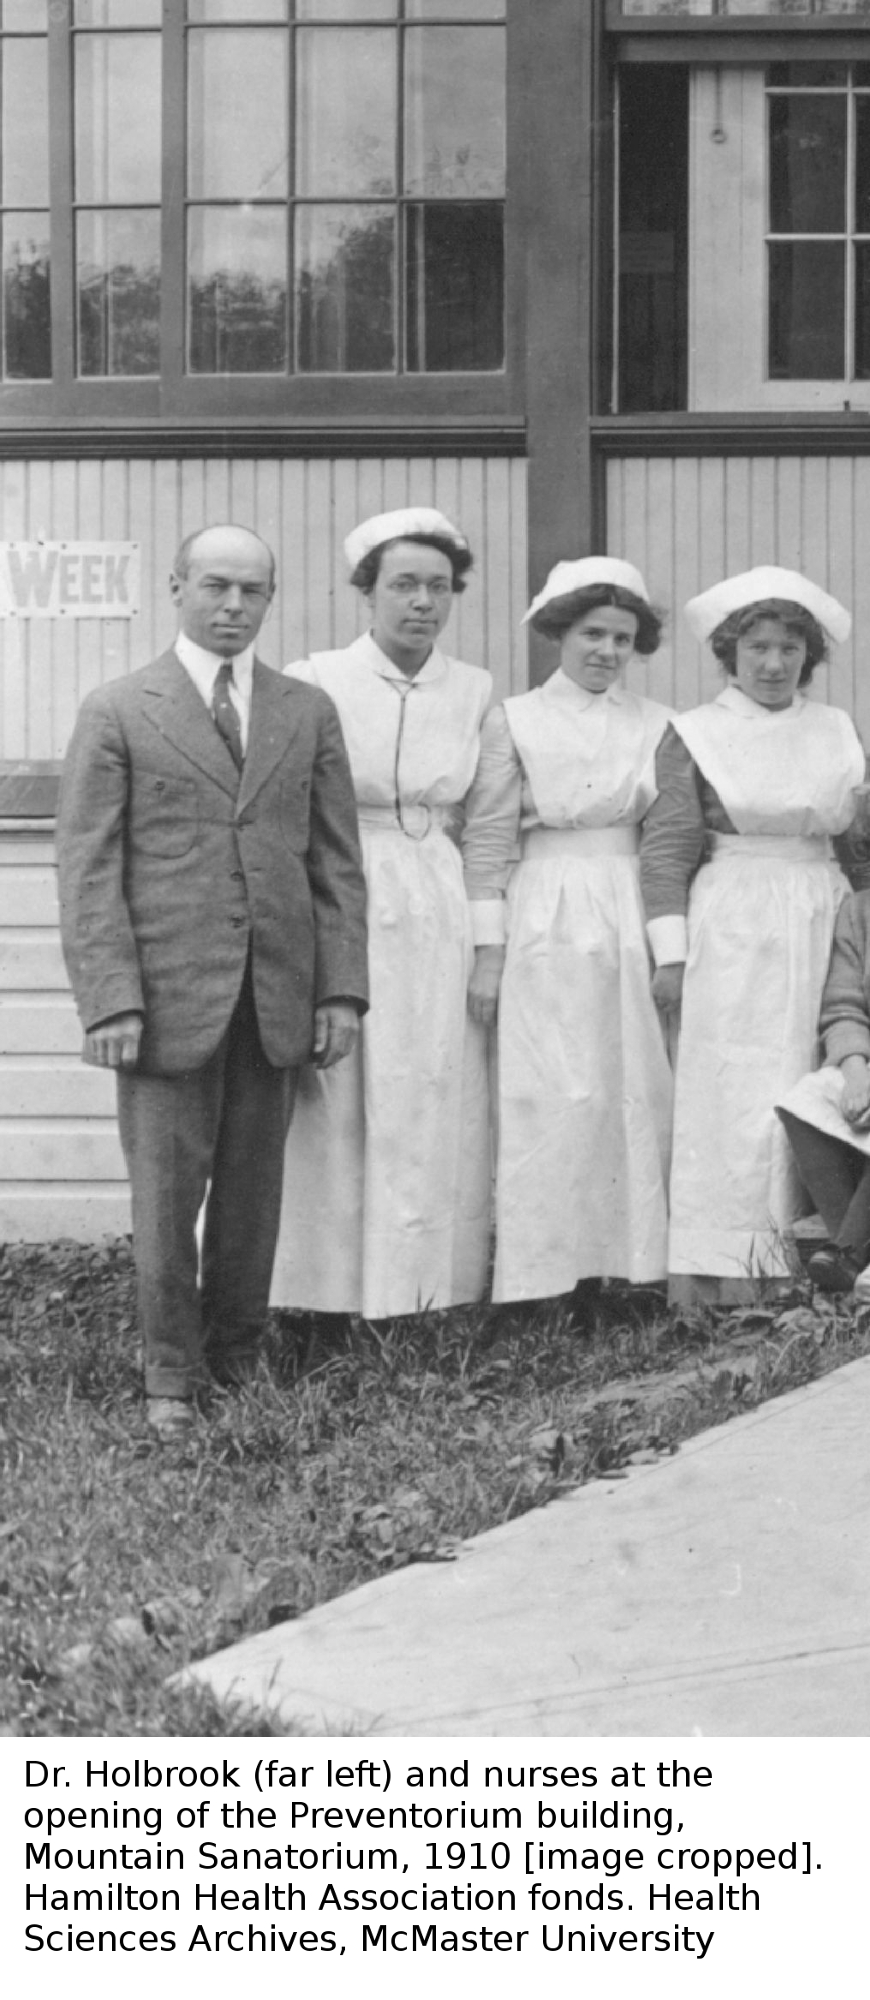 Black and white image of Dr. Holbrook (far left) and nurses at the opening of the Preventorium building, Mountain Sanatorium, 1910 [image cropped]